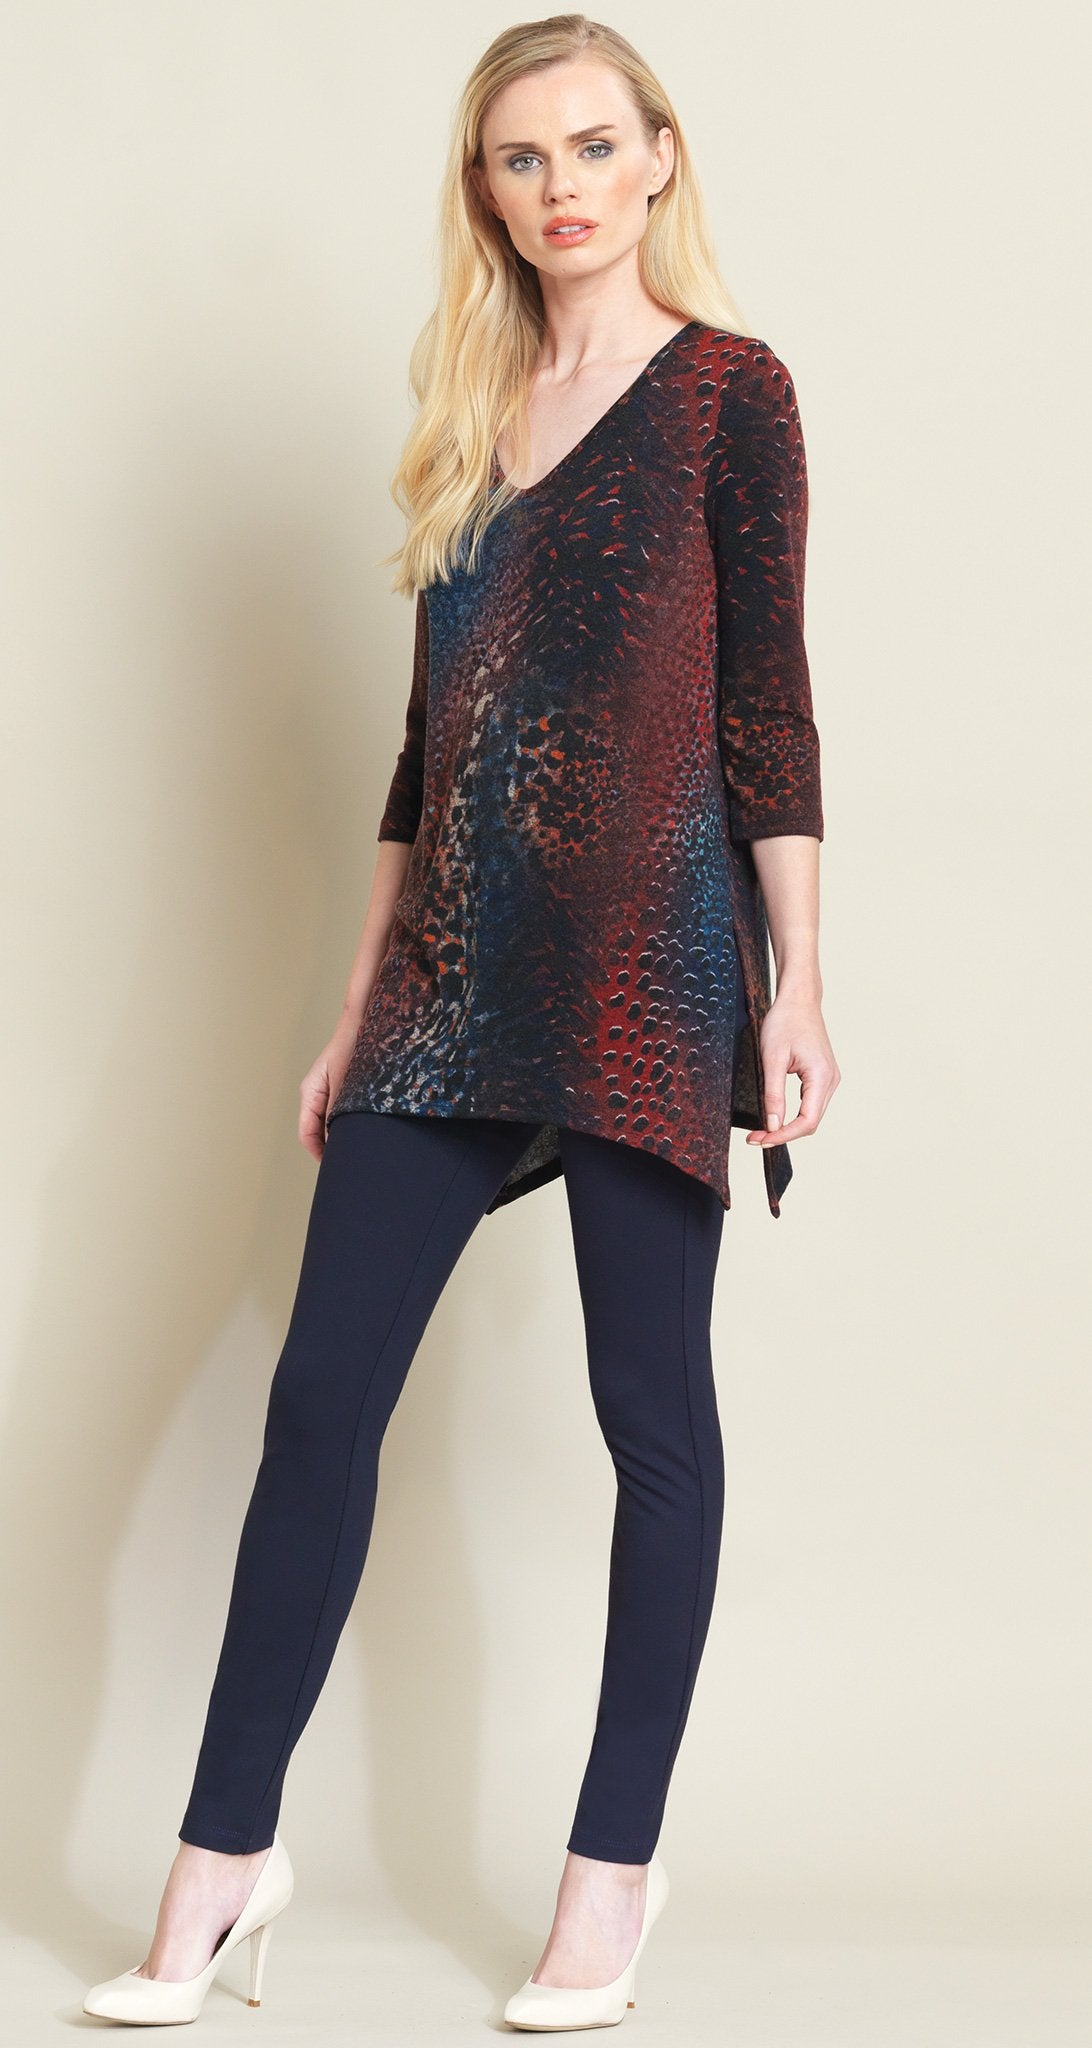 Animal Print Side Vent Sweater Tunic - Merlot Mult -  Final Sale! - Clara Sunwoo